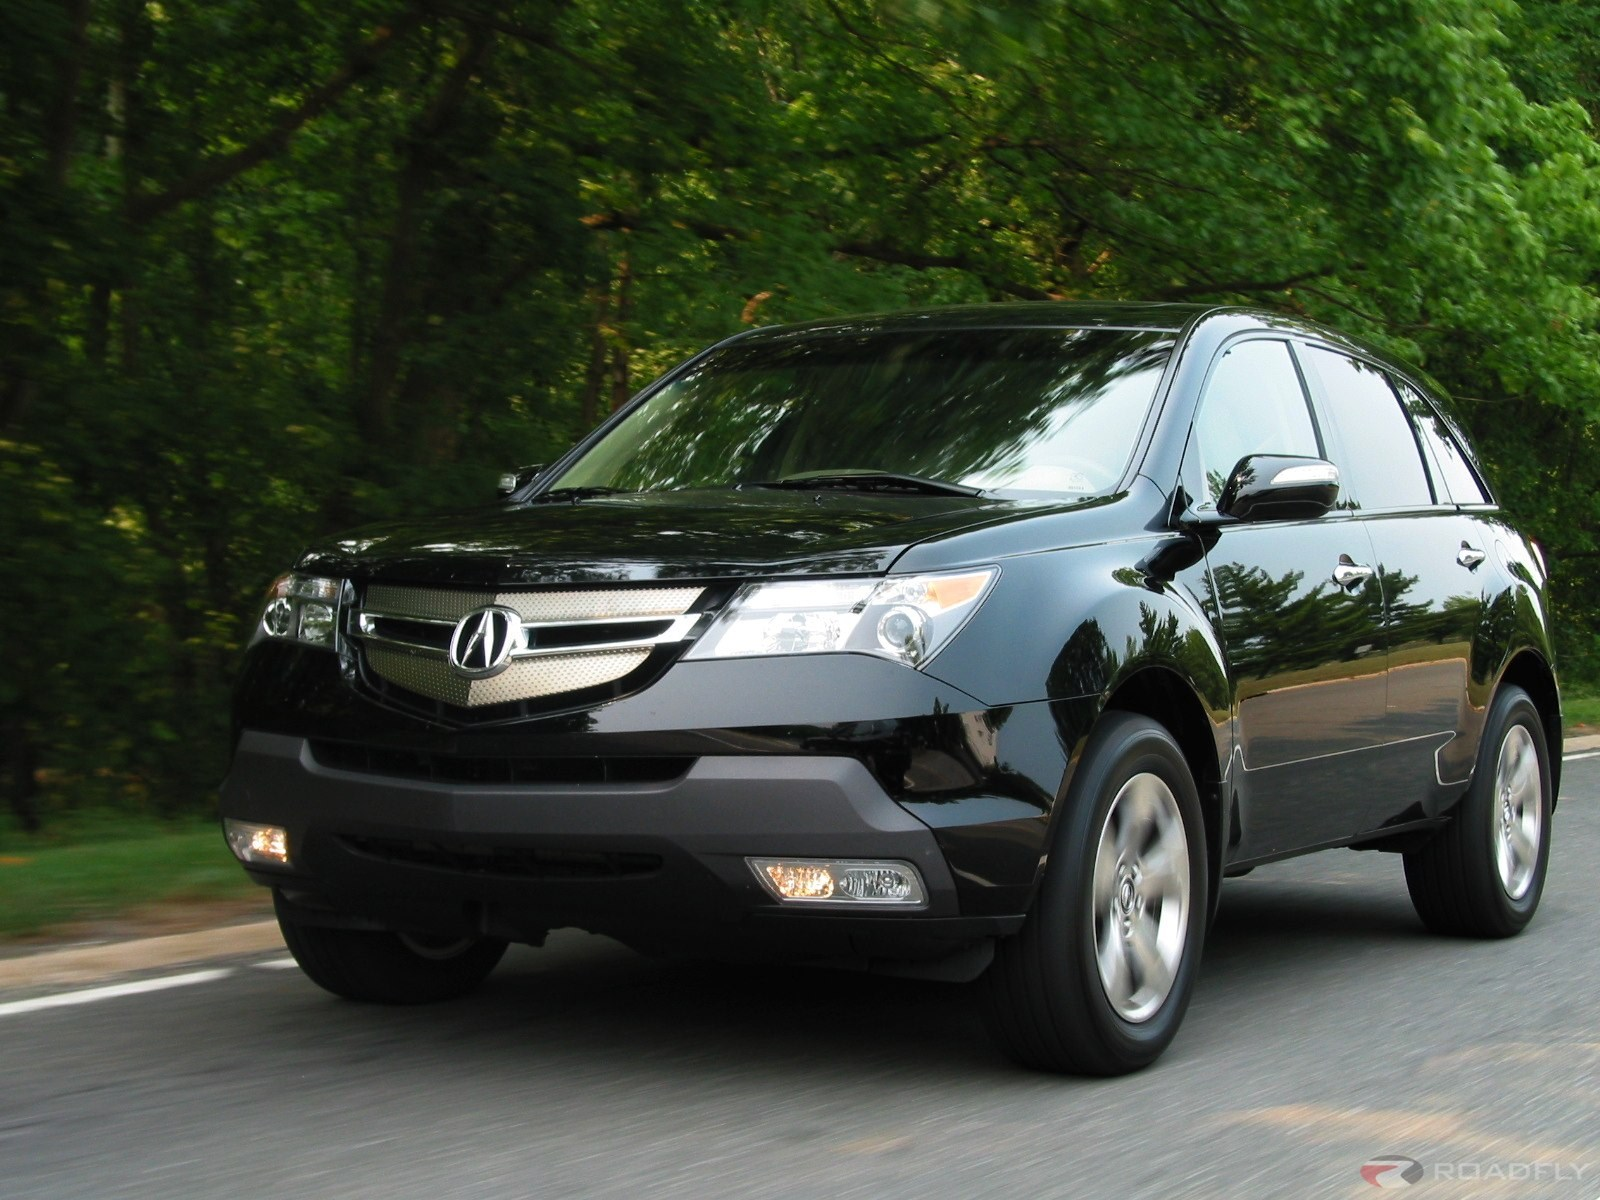 honda pilot Review release date Spy Photos free download image